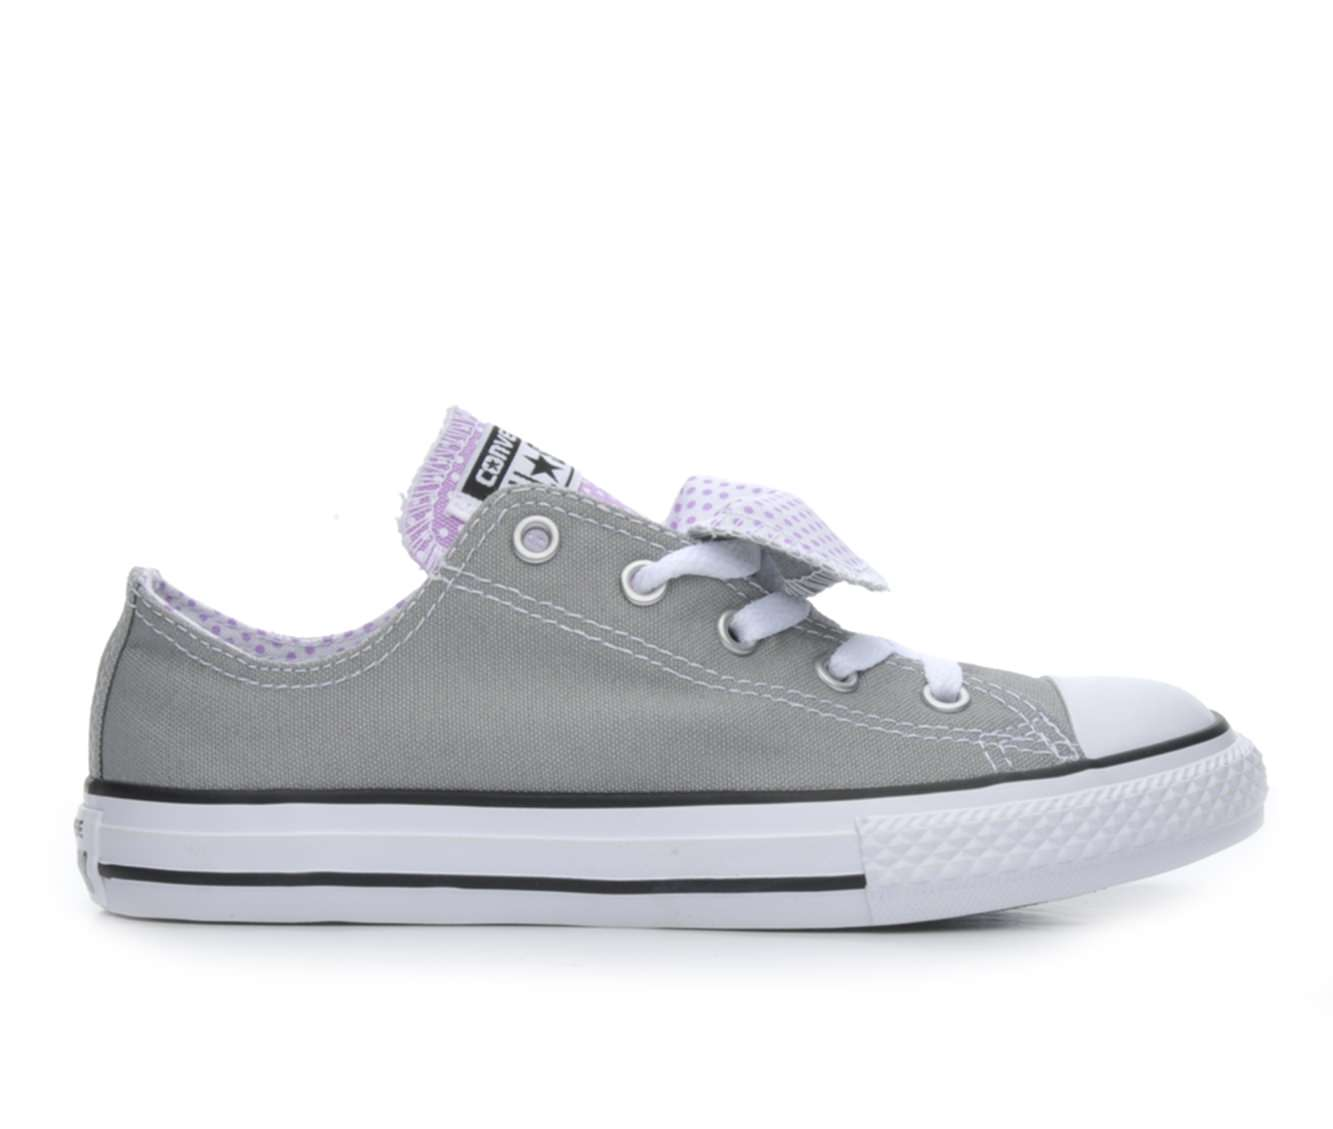 Girls' Converse Chuck Taylor All Star DBL Tongue Sneakers (Grey)